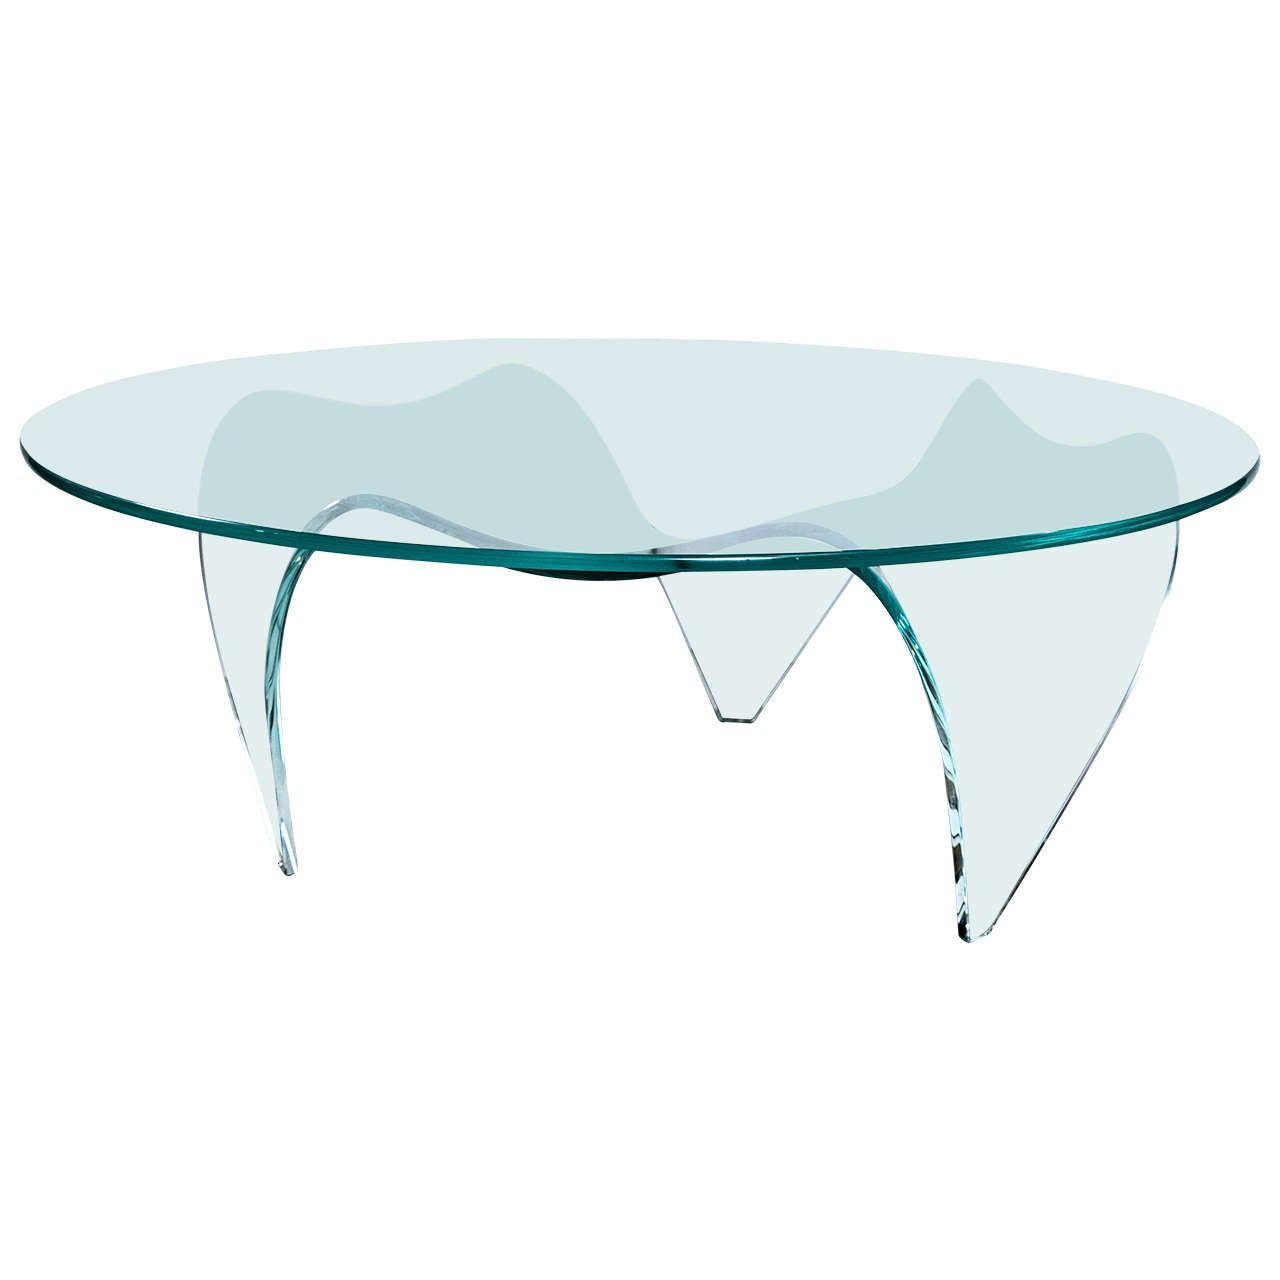 Pace round glass top and glass base coffee table for sale Glass coffee table tops